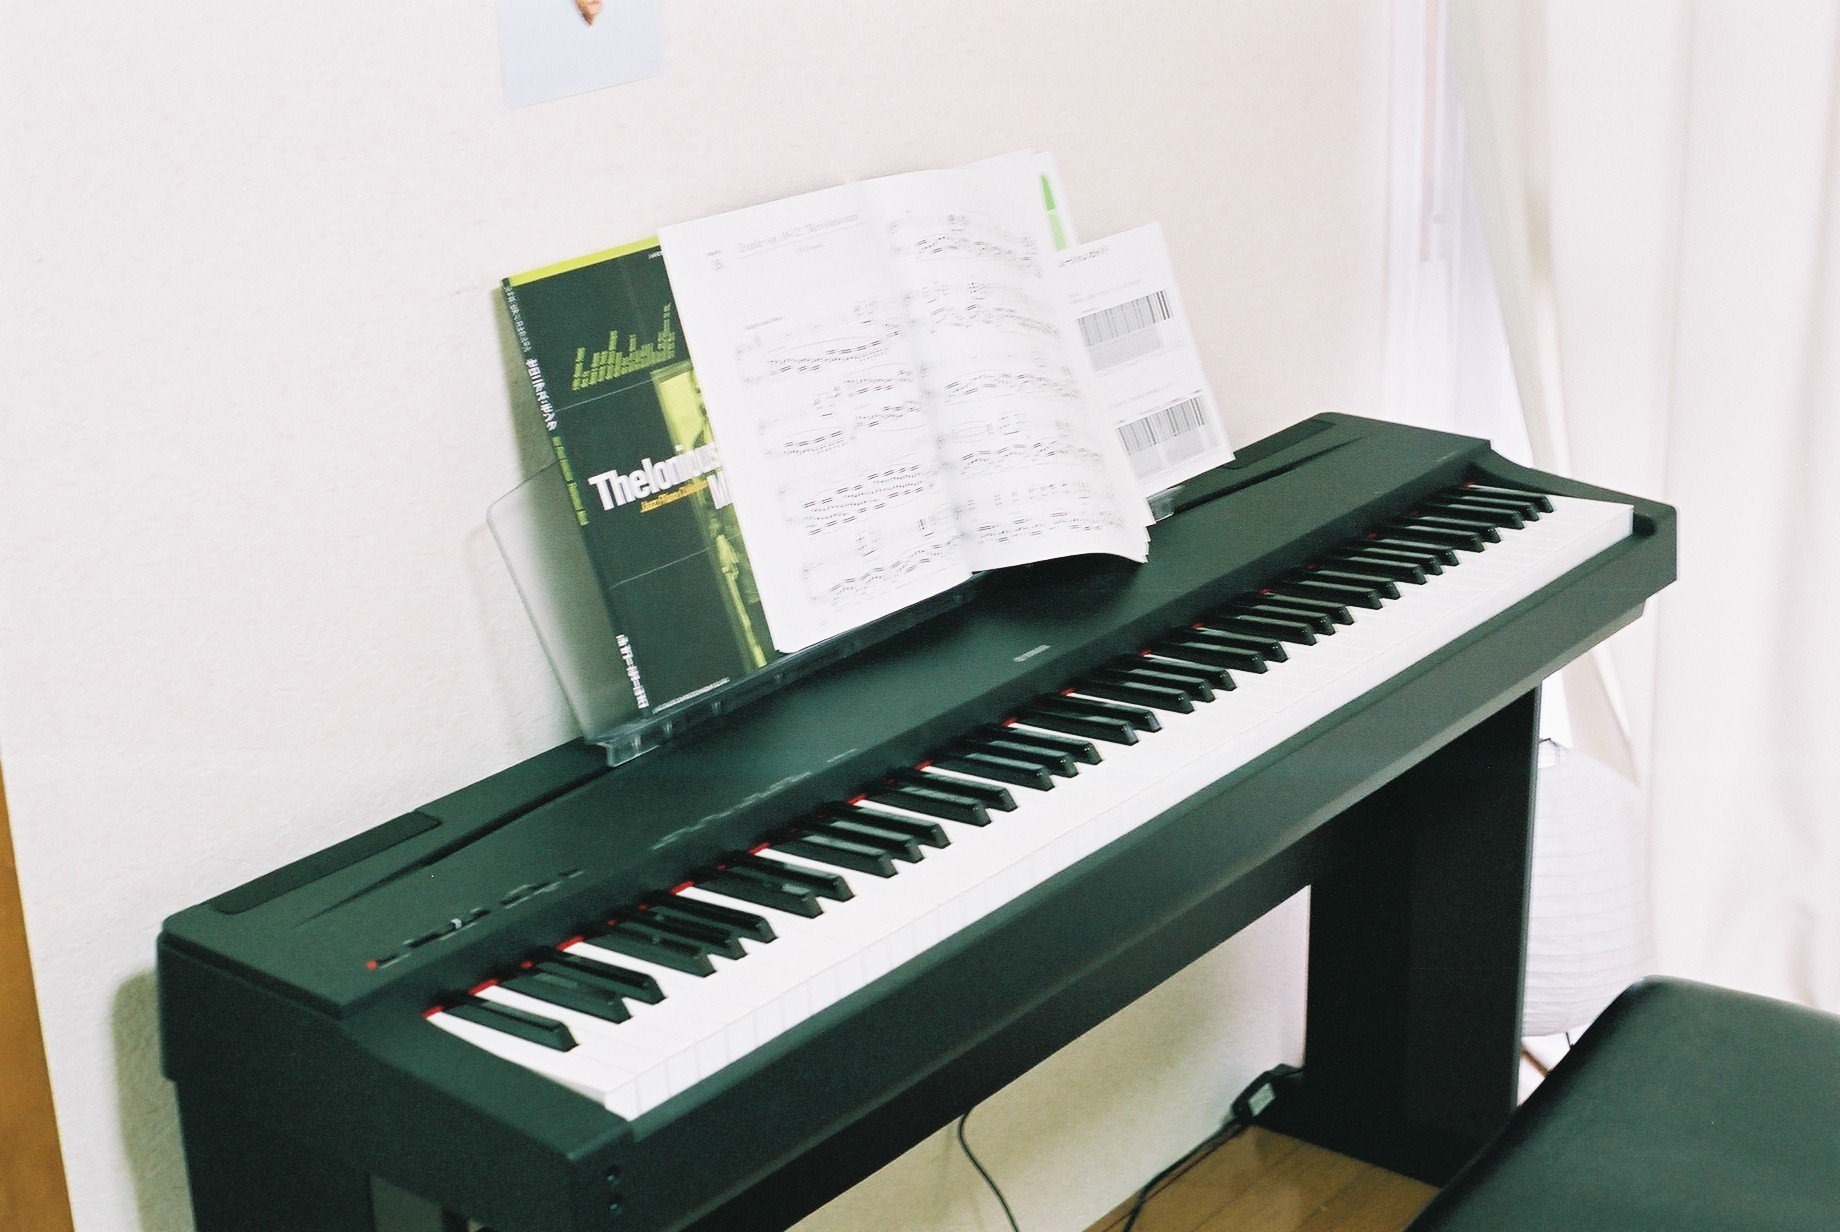 Sold wts yamaha p70 digital stage piano black finish 88 fully weighted touch sensiti for Yamaha fully weighted keyboard